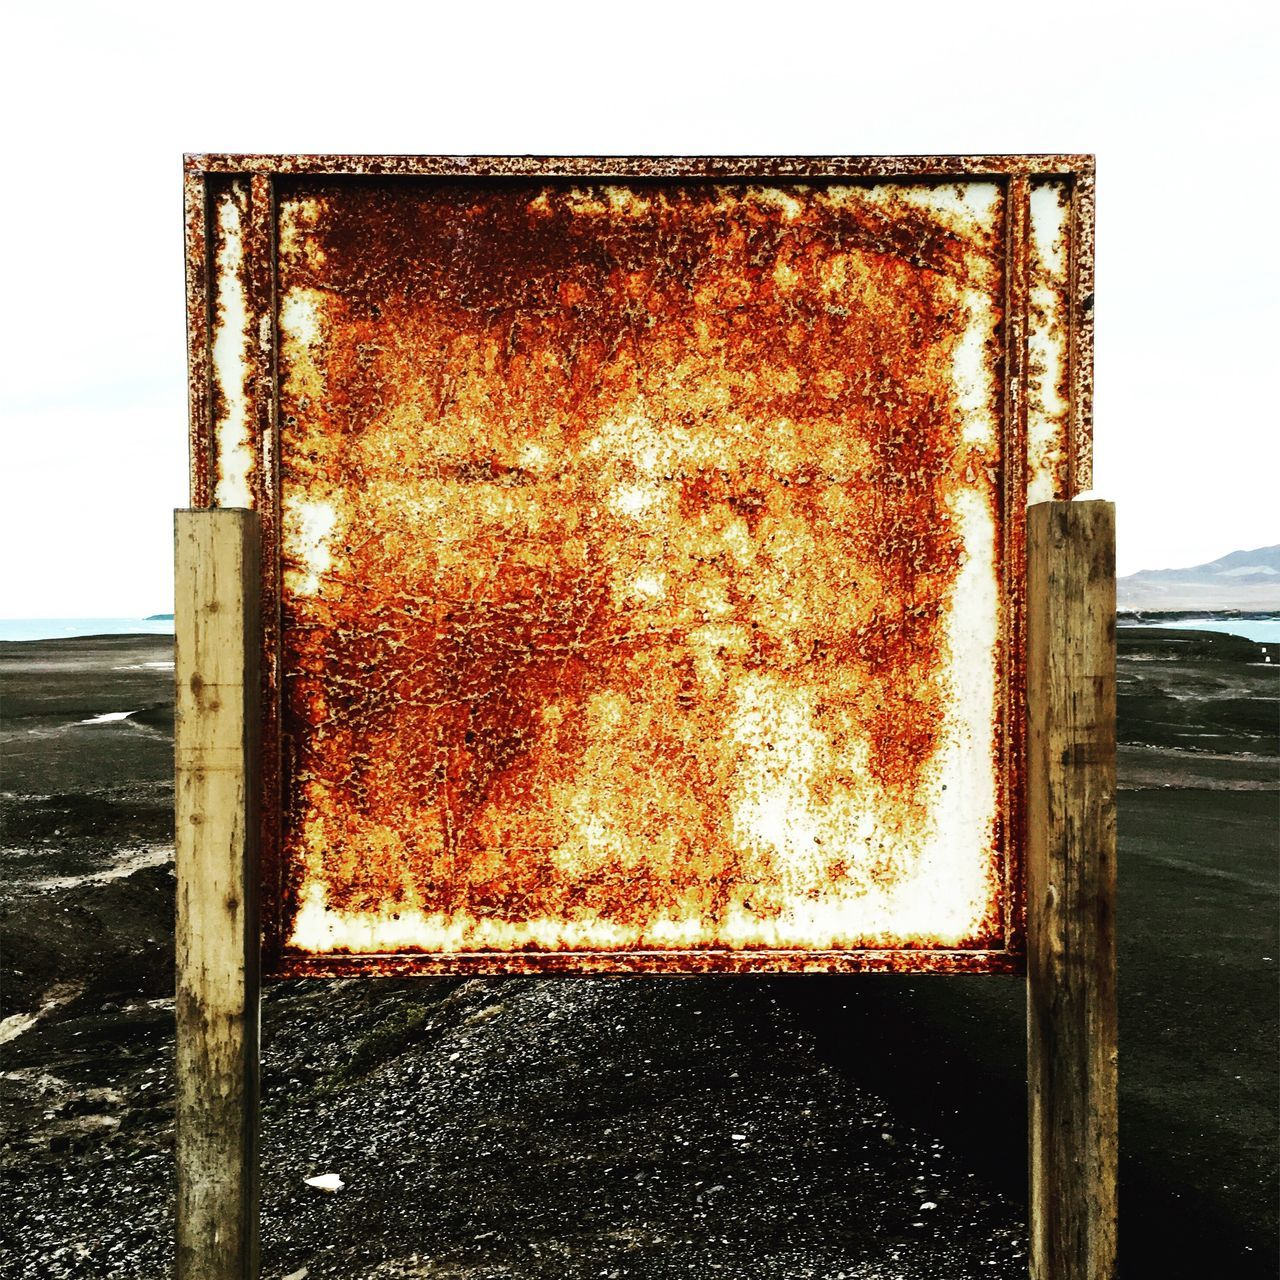 Endoftheworld Rust Rusty Rusty Things Square Geometric Shape Simplicity Simplicity Is Beauty.